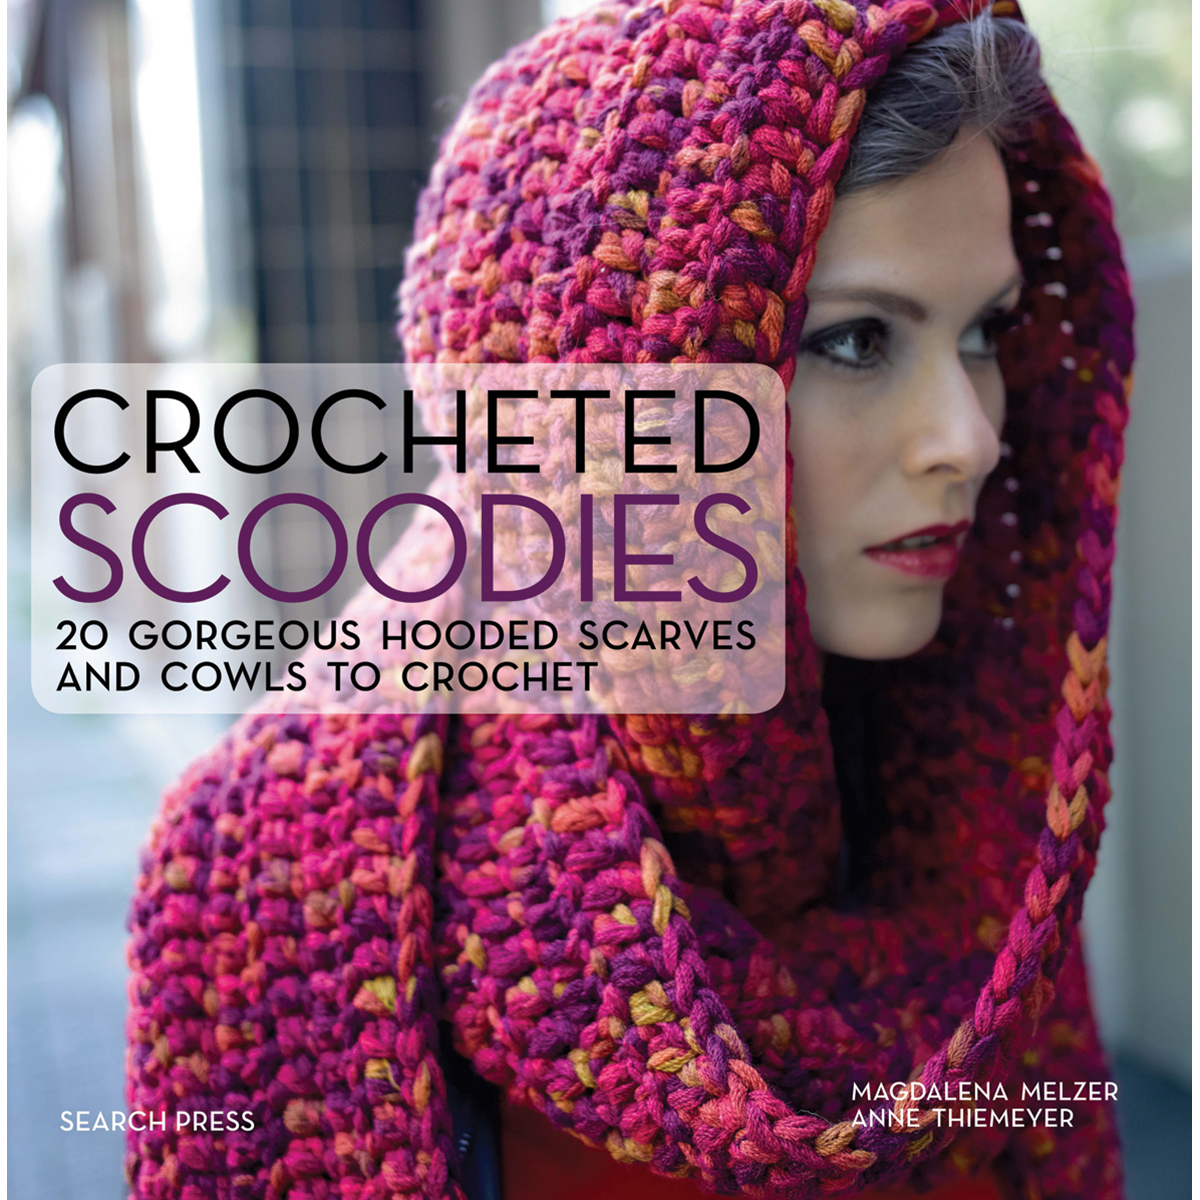 Book: Crocheted Scoodies Magdalena Melzer